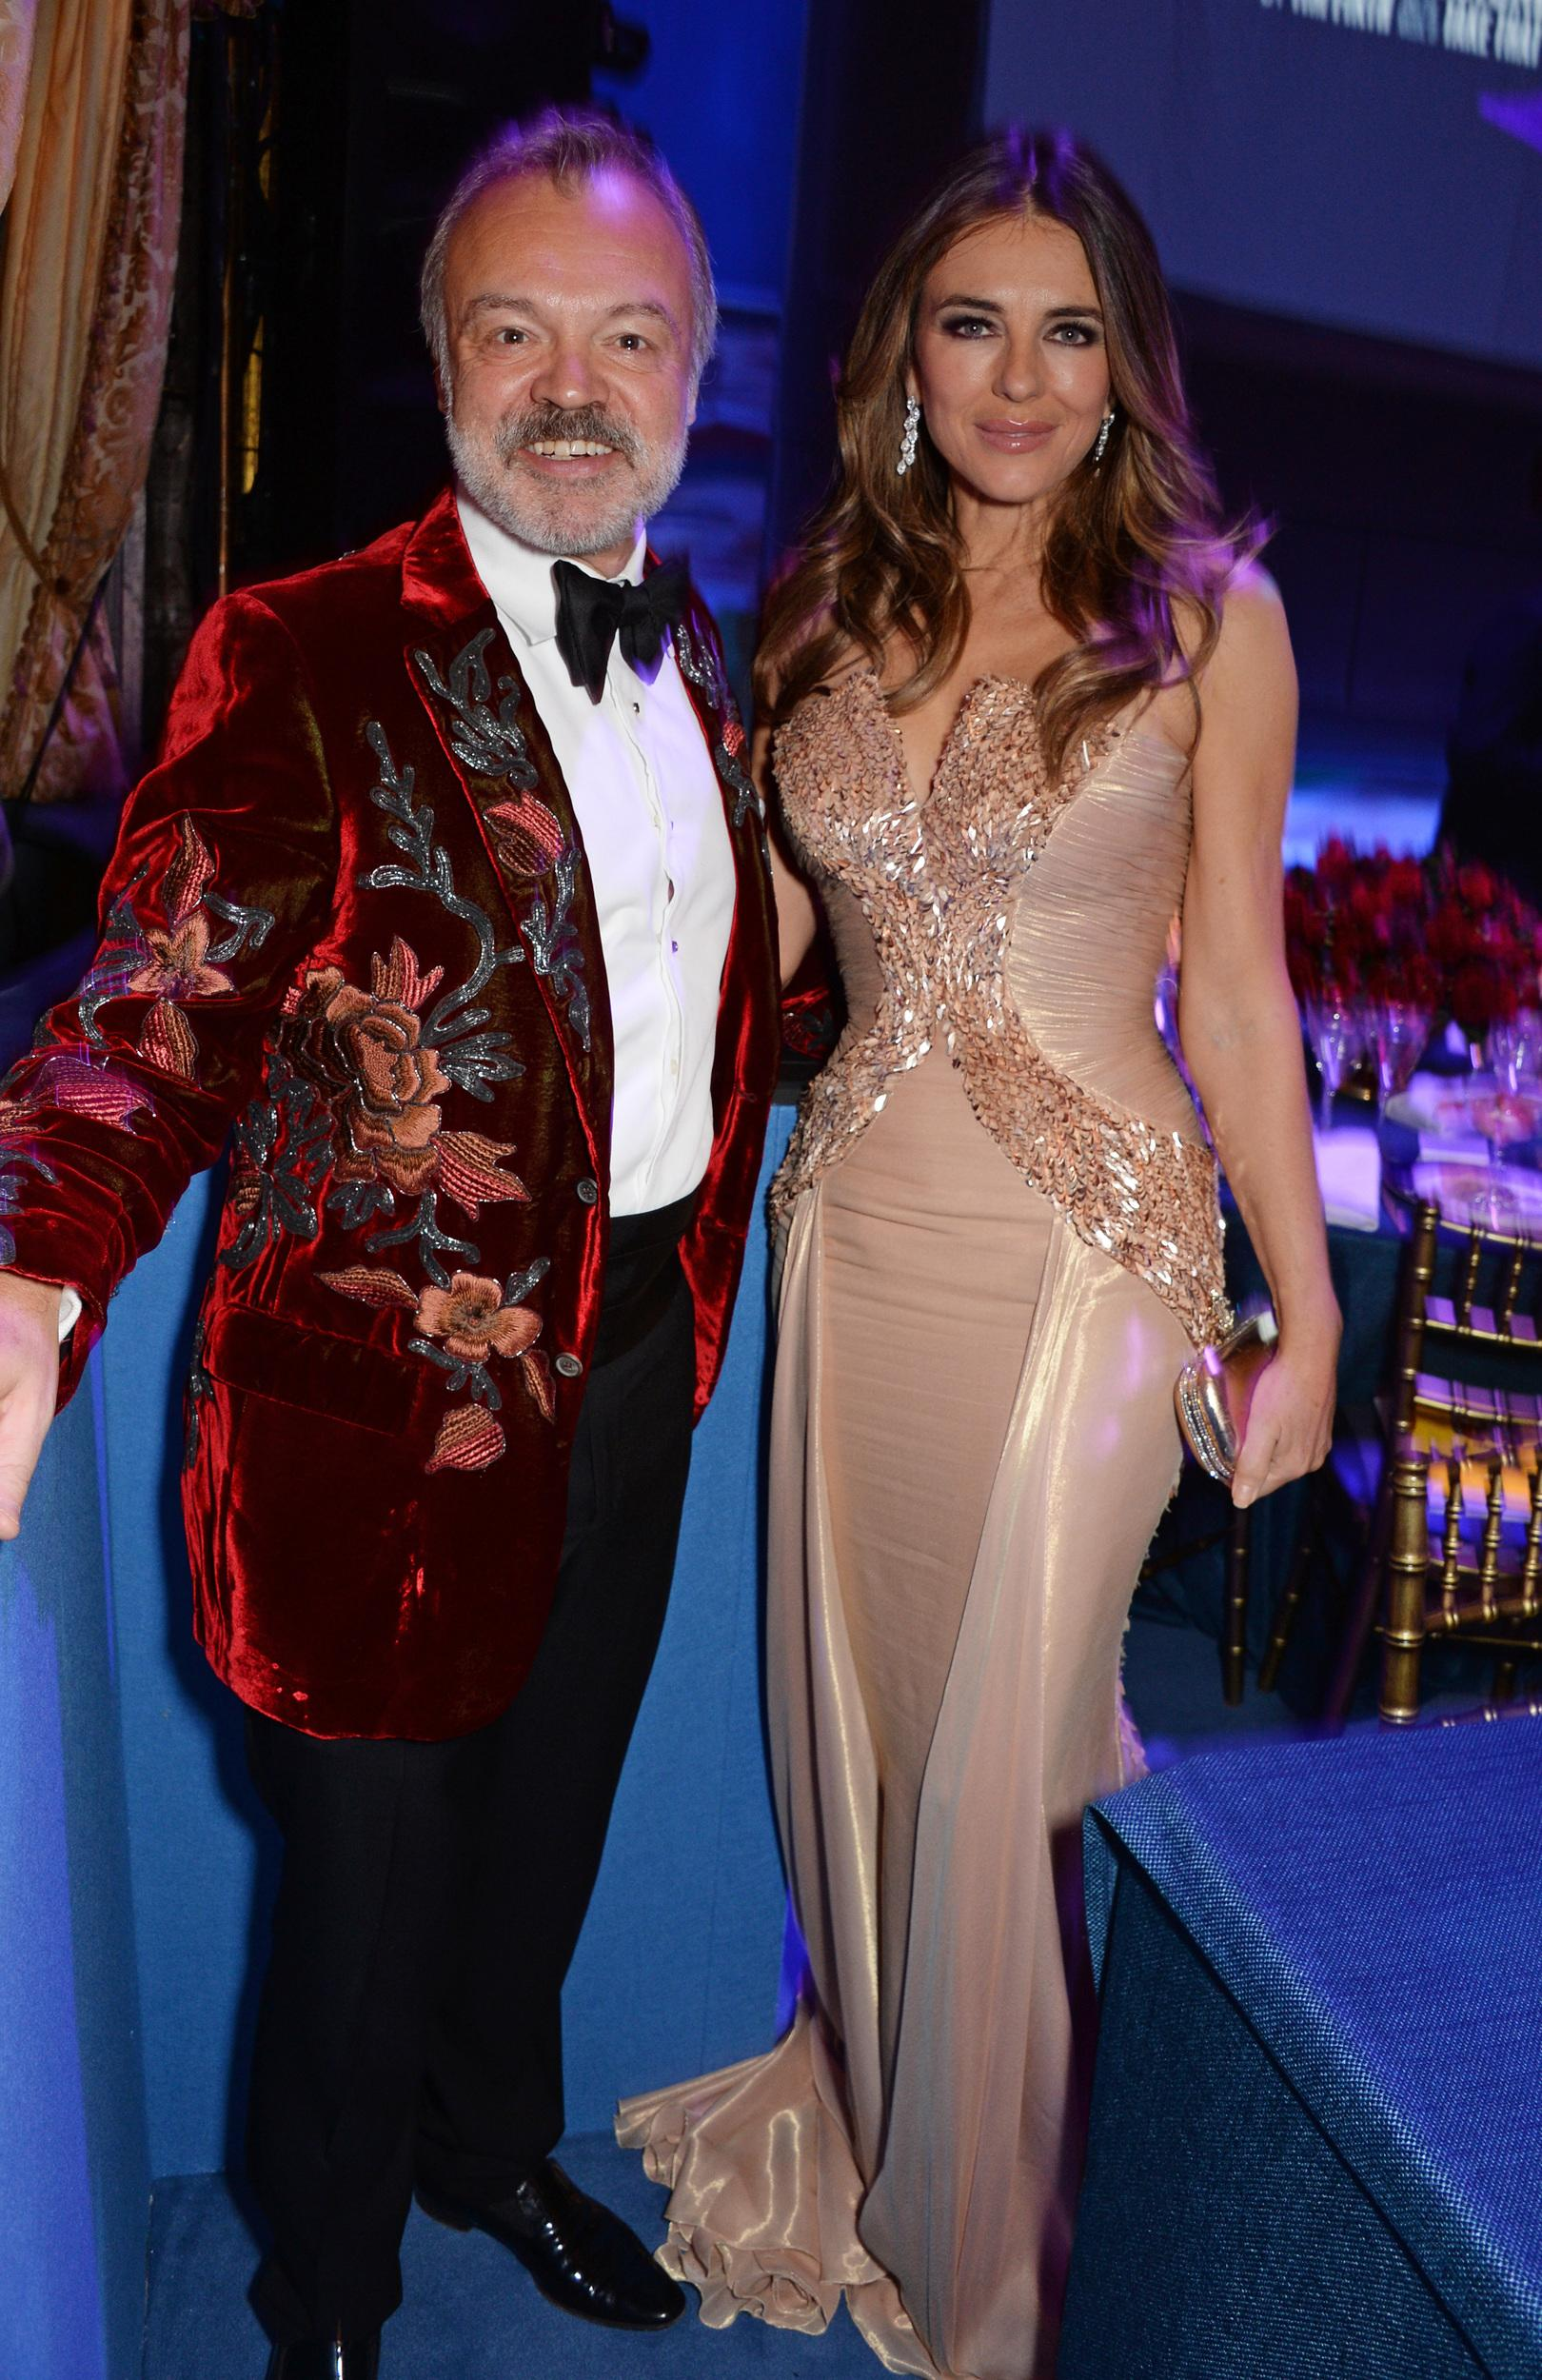 LONDON, ENGLAND - DECEMBER 04:    Graham Norton and Elizabeth Hurley attend  the Opening Night Gala of 'The Band' to benefit the Elton John AIDS Foundation supported by The Evening Standard at Theatre Royal Haymarket on December 4, 2018 in London, England.  (Photo by David M. Benett/Dave Benett/Getty Images)